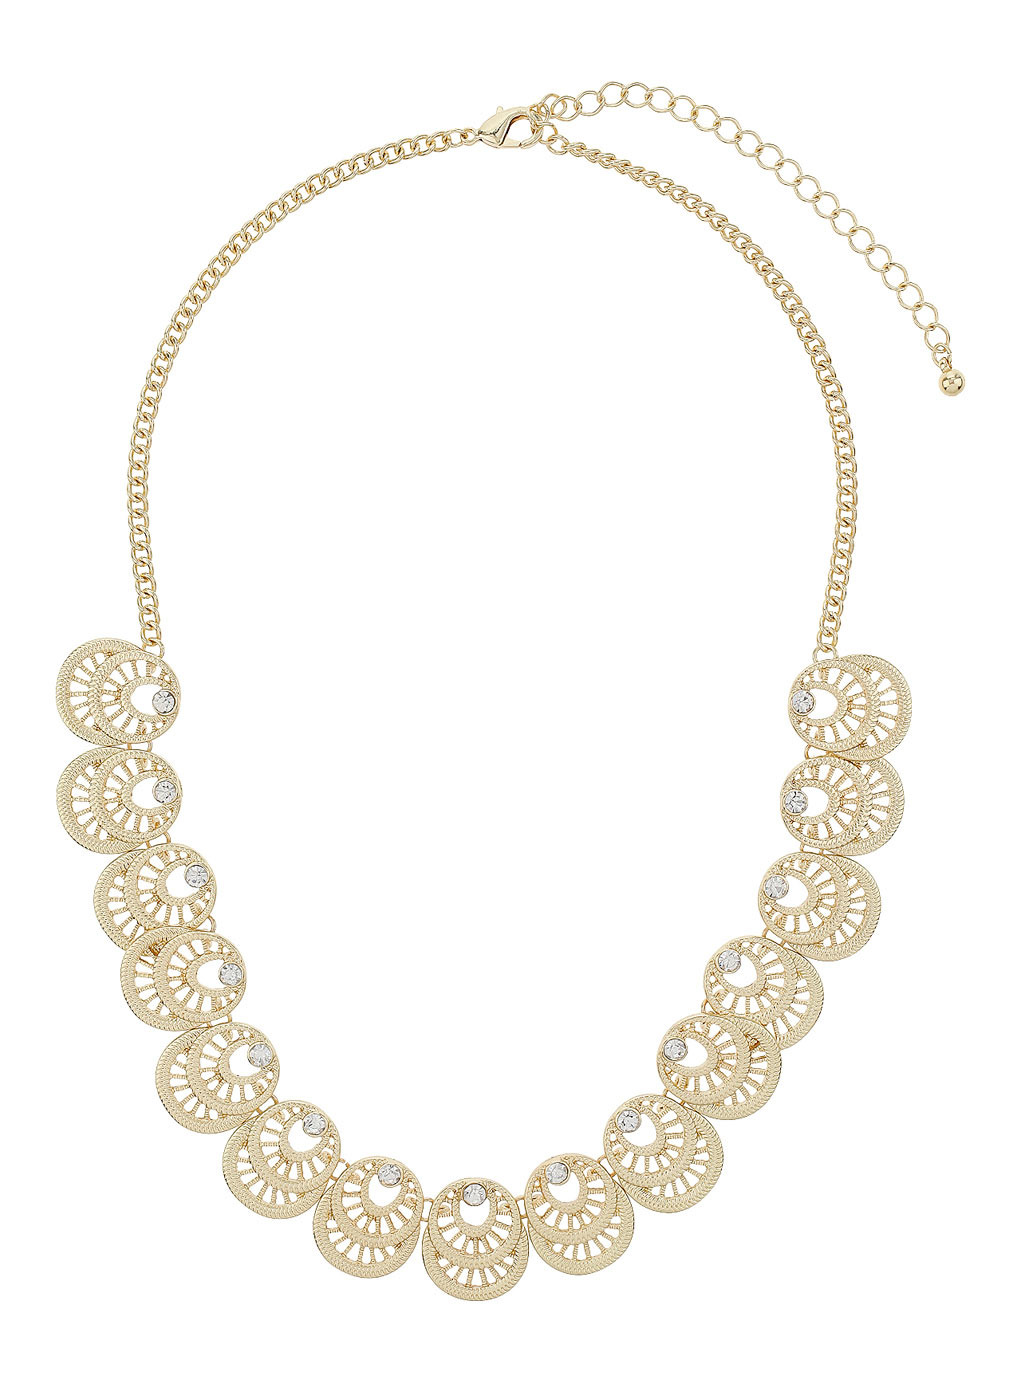 Gold Filigree Collar Necklace - predominant colour: gold; occasions: evening, creative work; length: mid; size: standard; material: chain/metal; finish: metallic; embellishment: crystals/glass; style: bib/statement; season: s/s 2014